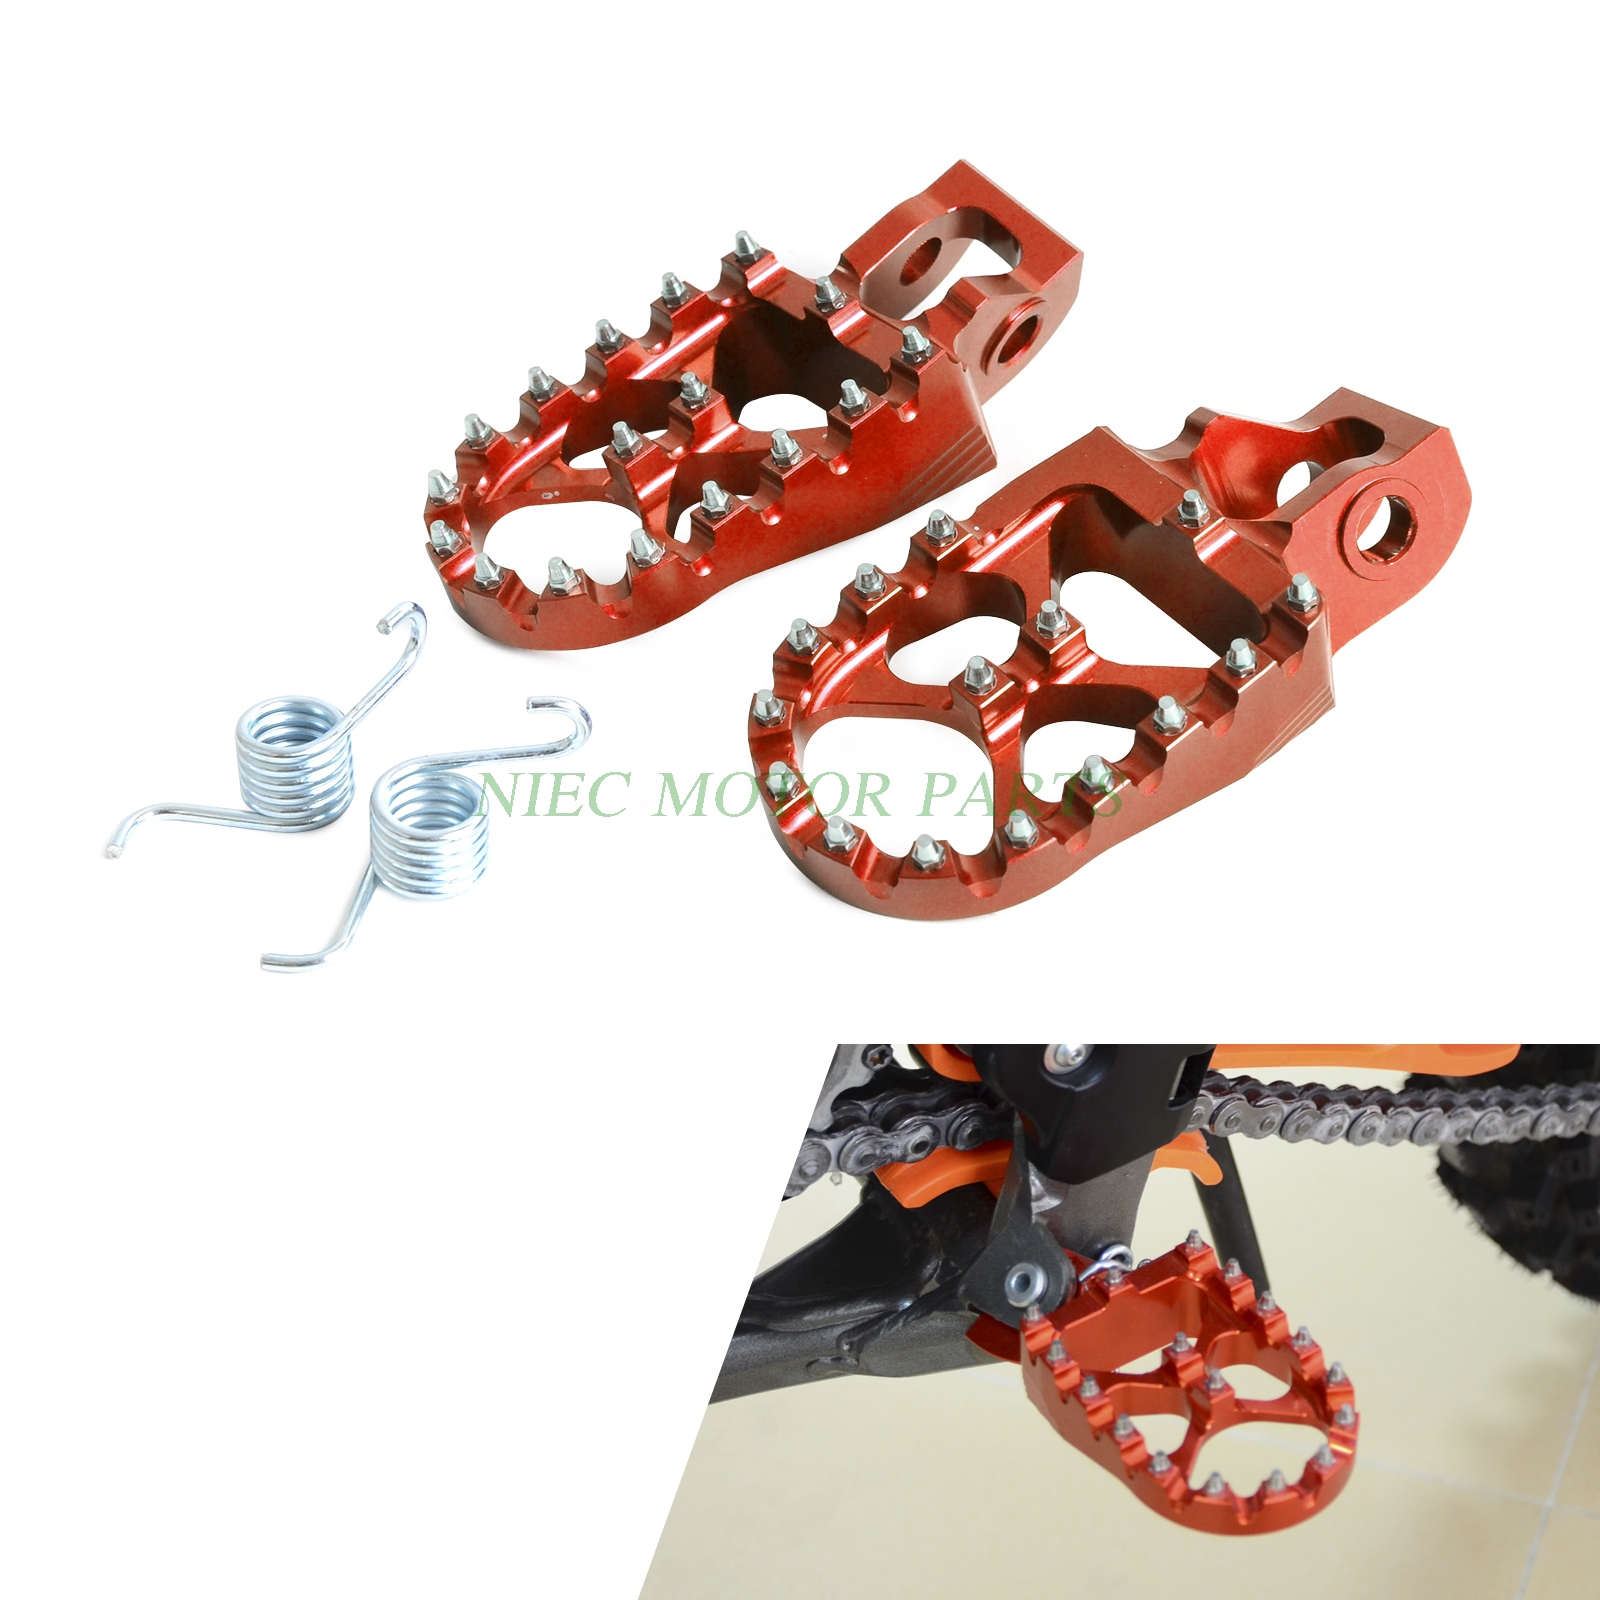 NICECNC Billet Wide CNC Foot Pegs Footrests For KTM 125 150 200 250 30 350 450 500 SX SXF EXC EXCF XC XCF XCW SMR EXCW 2017 for ktm exc sx sxf xc xcw xcf excf excw xcfw mx six days 65 85 125 200 250 300 350 400 450 525 billet mx foot pegs rests pedals